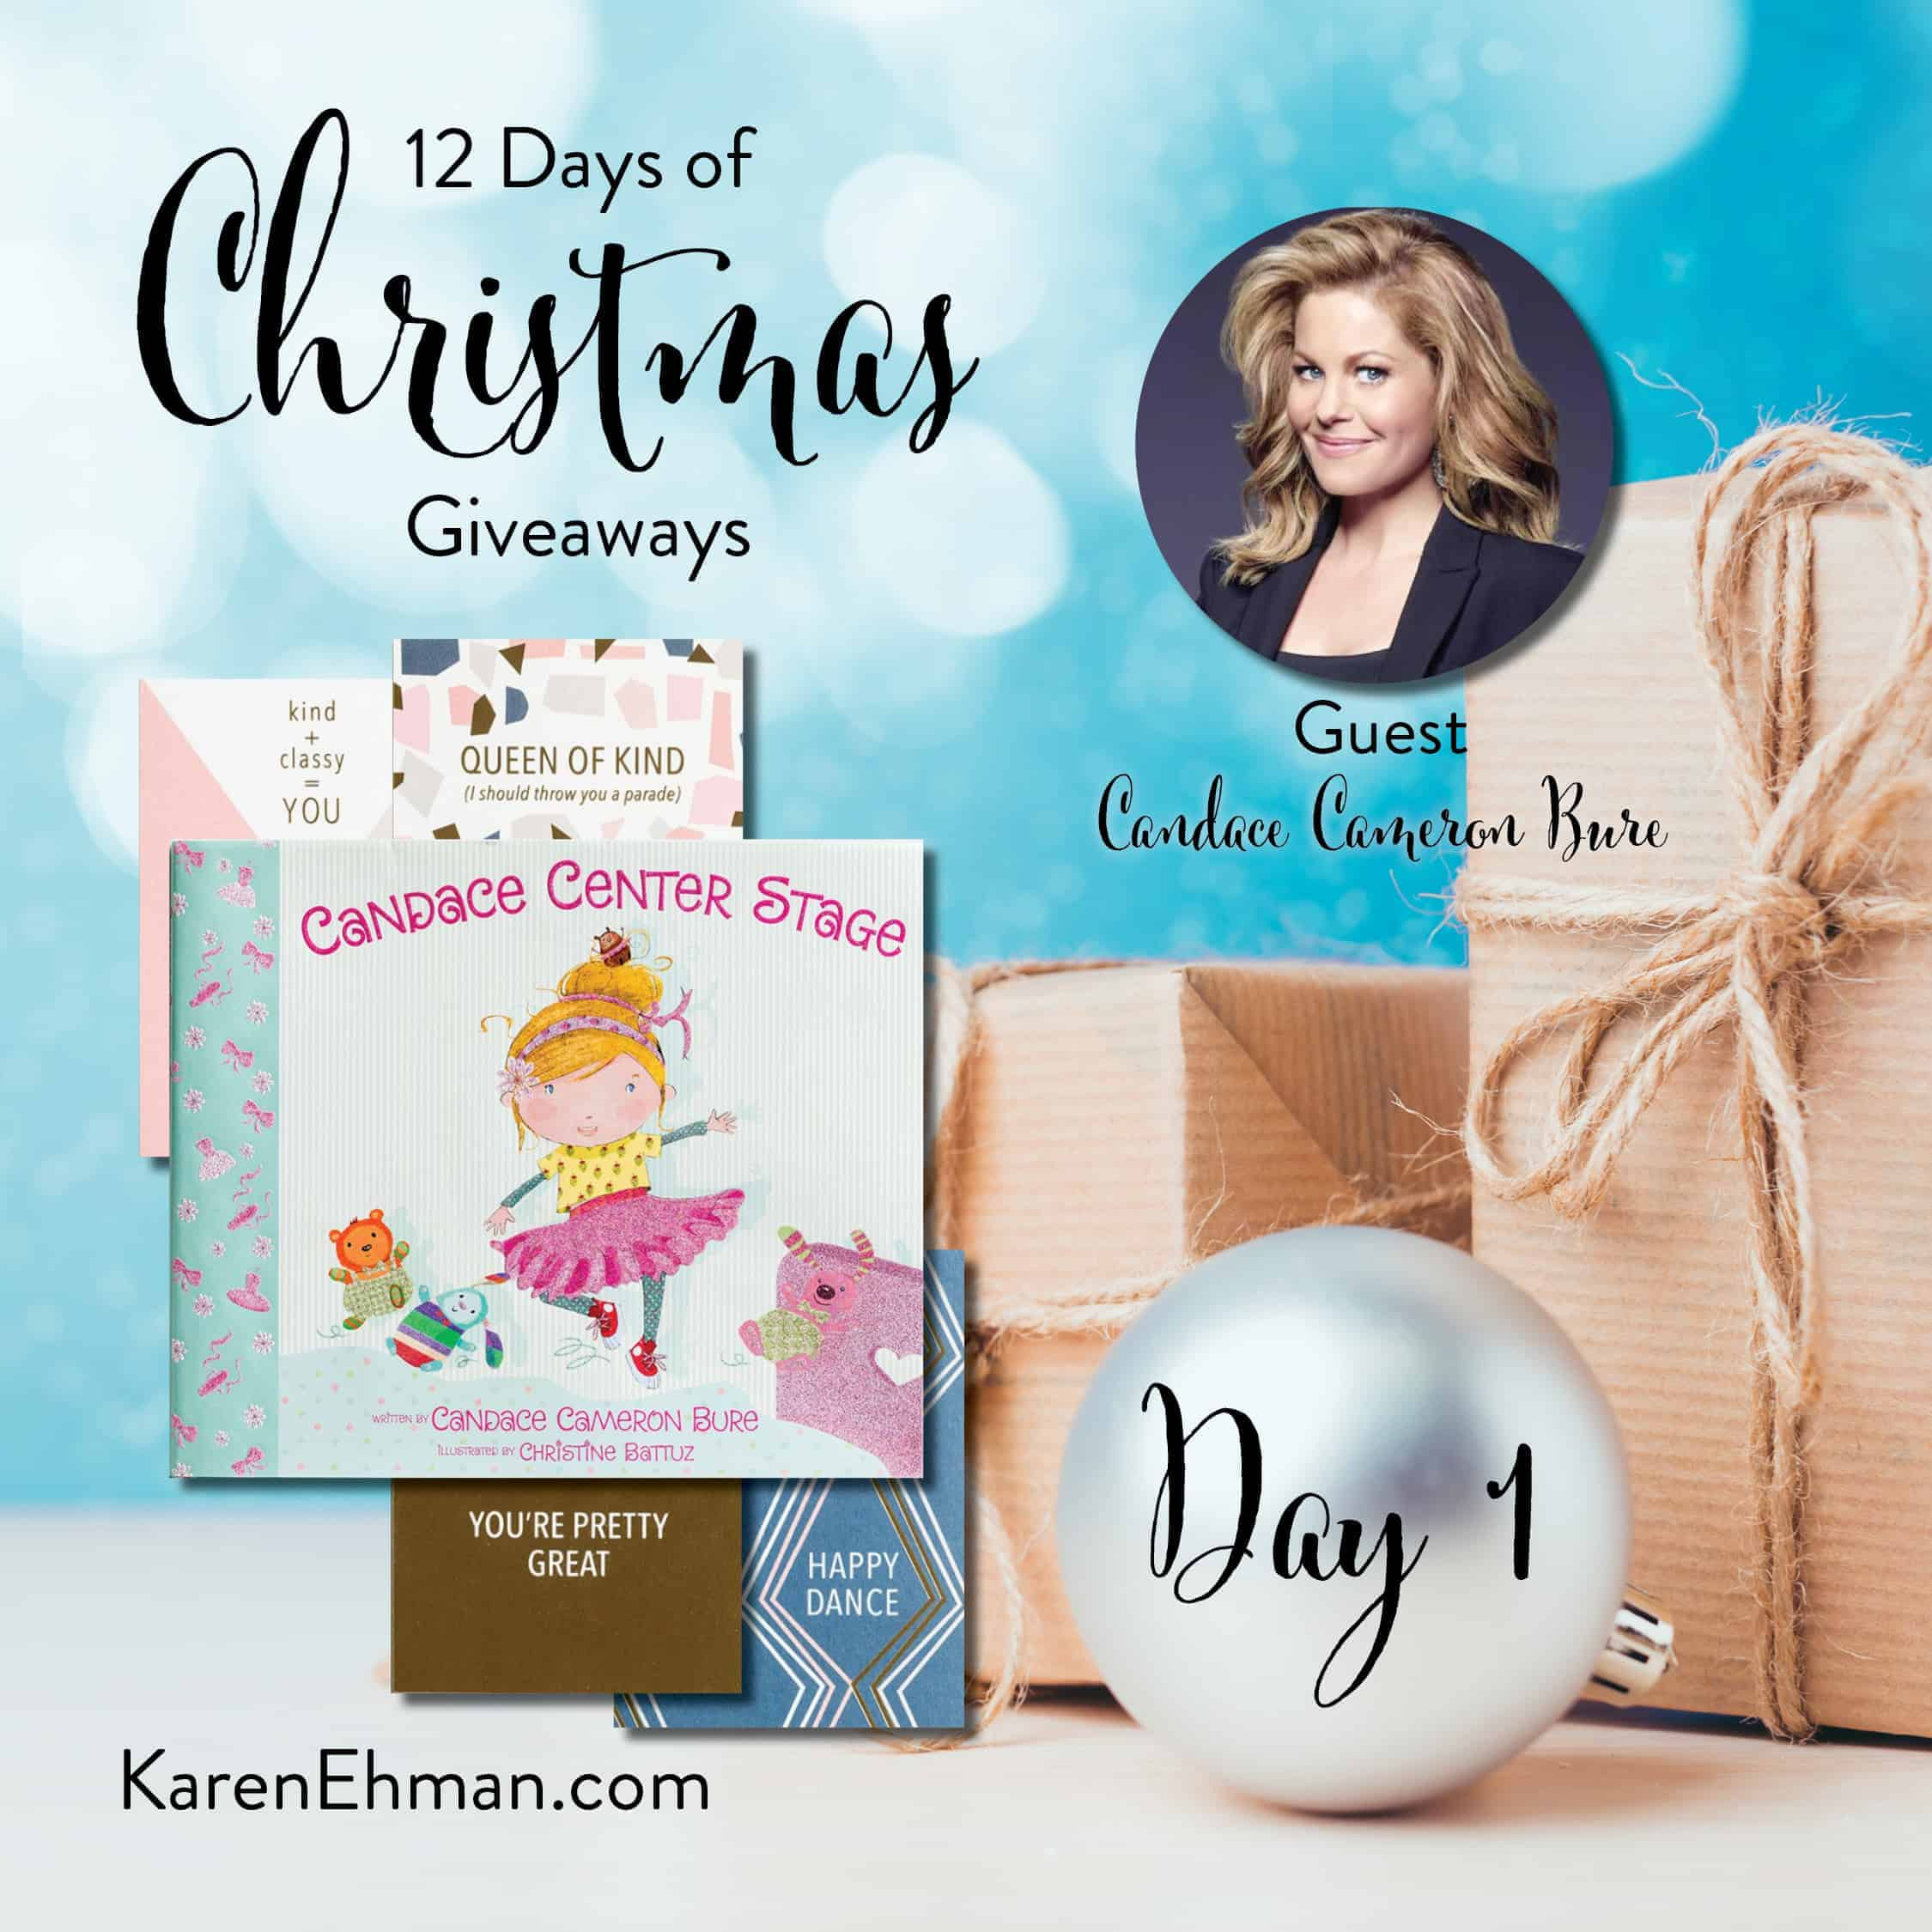 Day 1 of 12 Days of Christmas Giveaways (with Candace Cameron Bure)